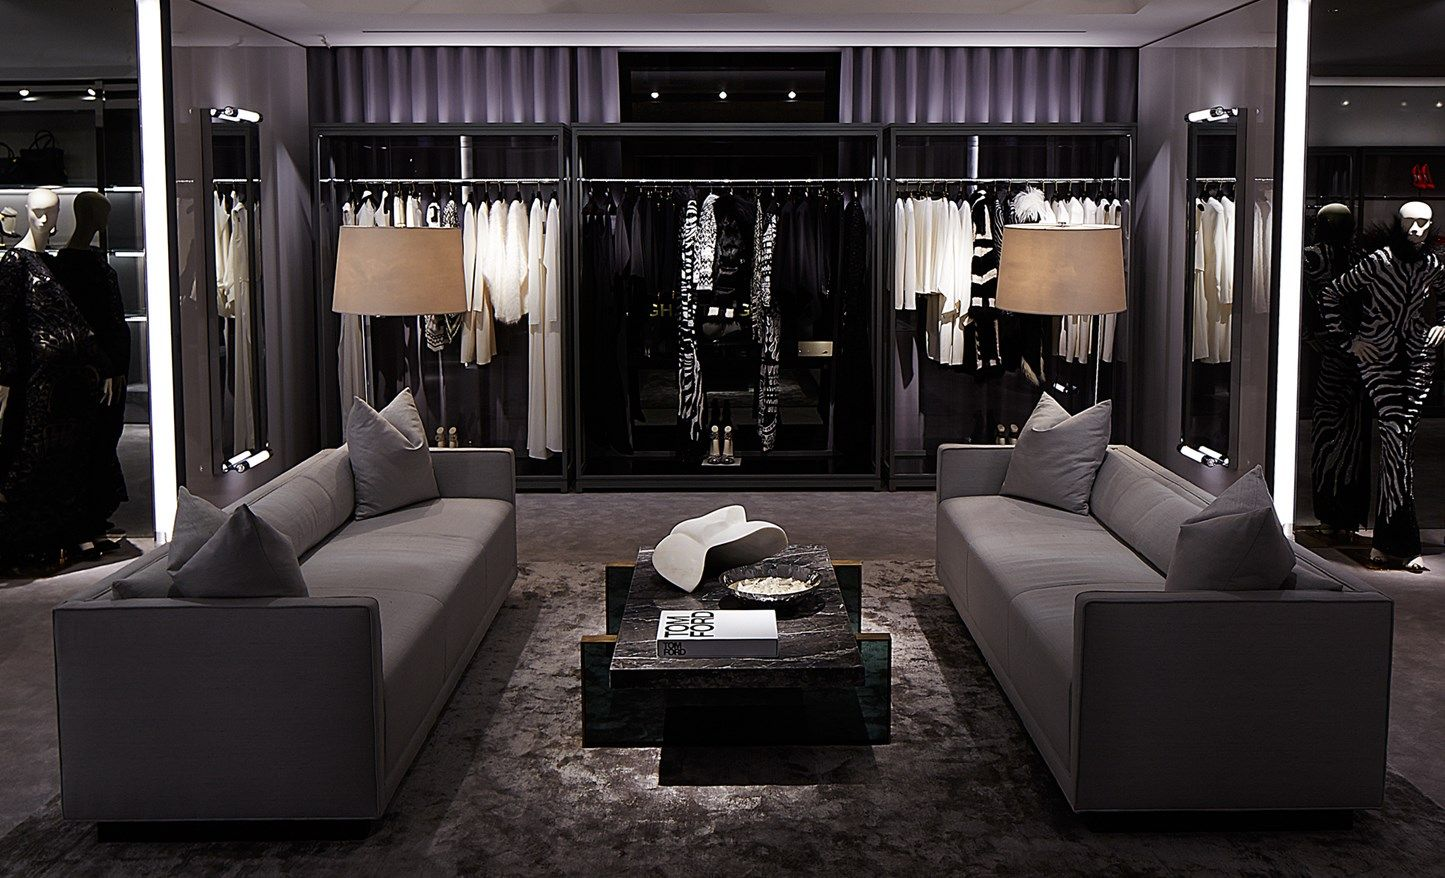 Tom ford retail interiors google search school project - Tom interiores ...